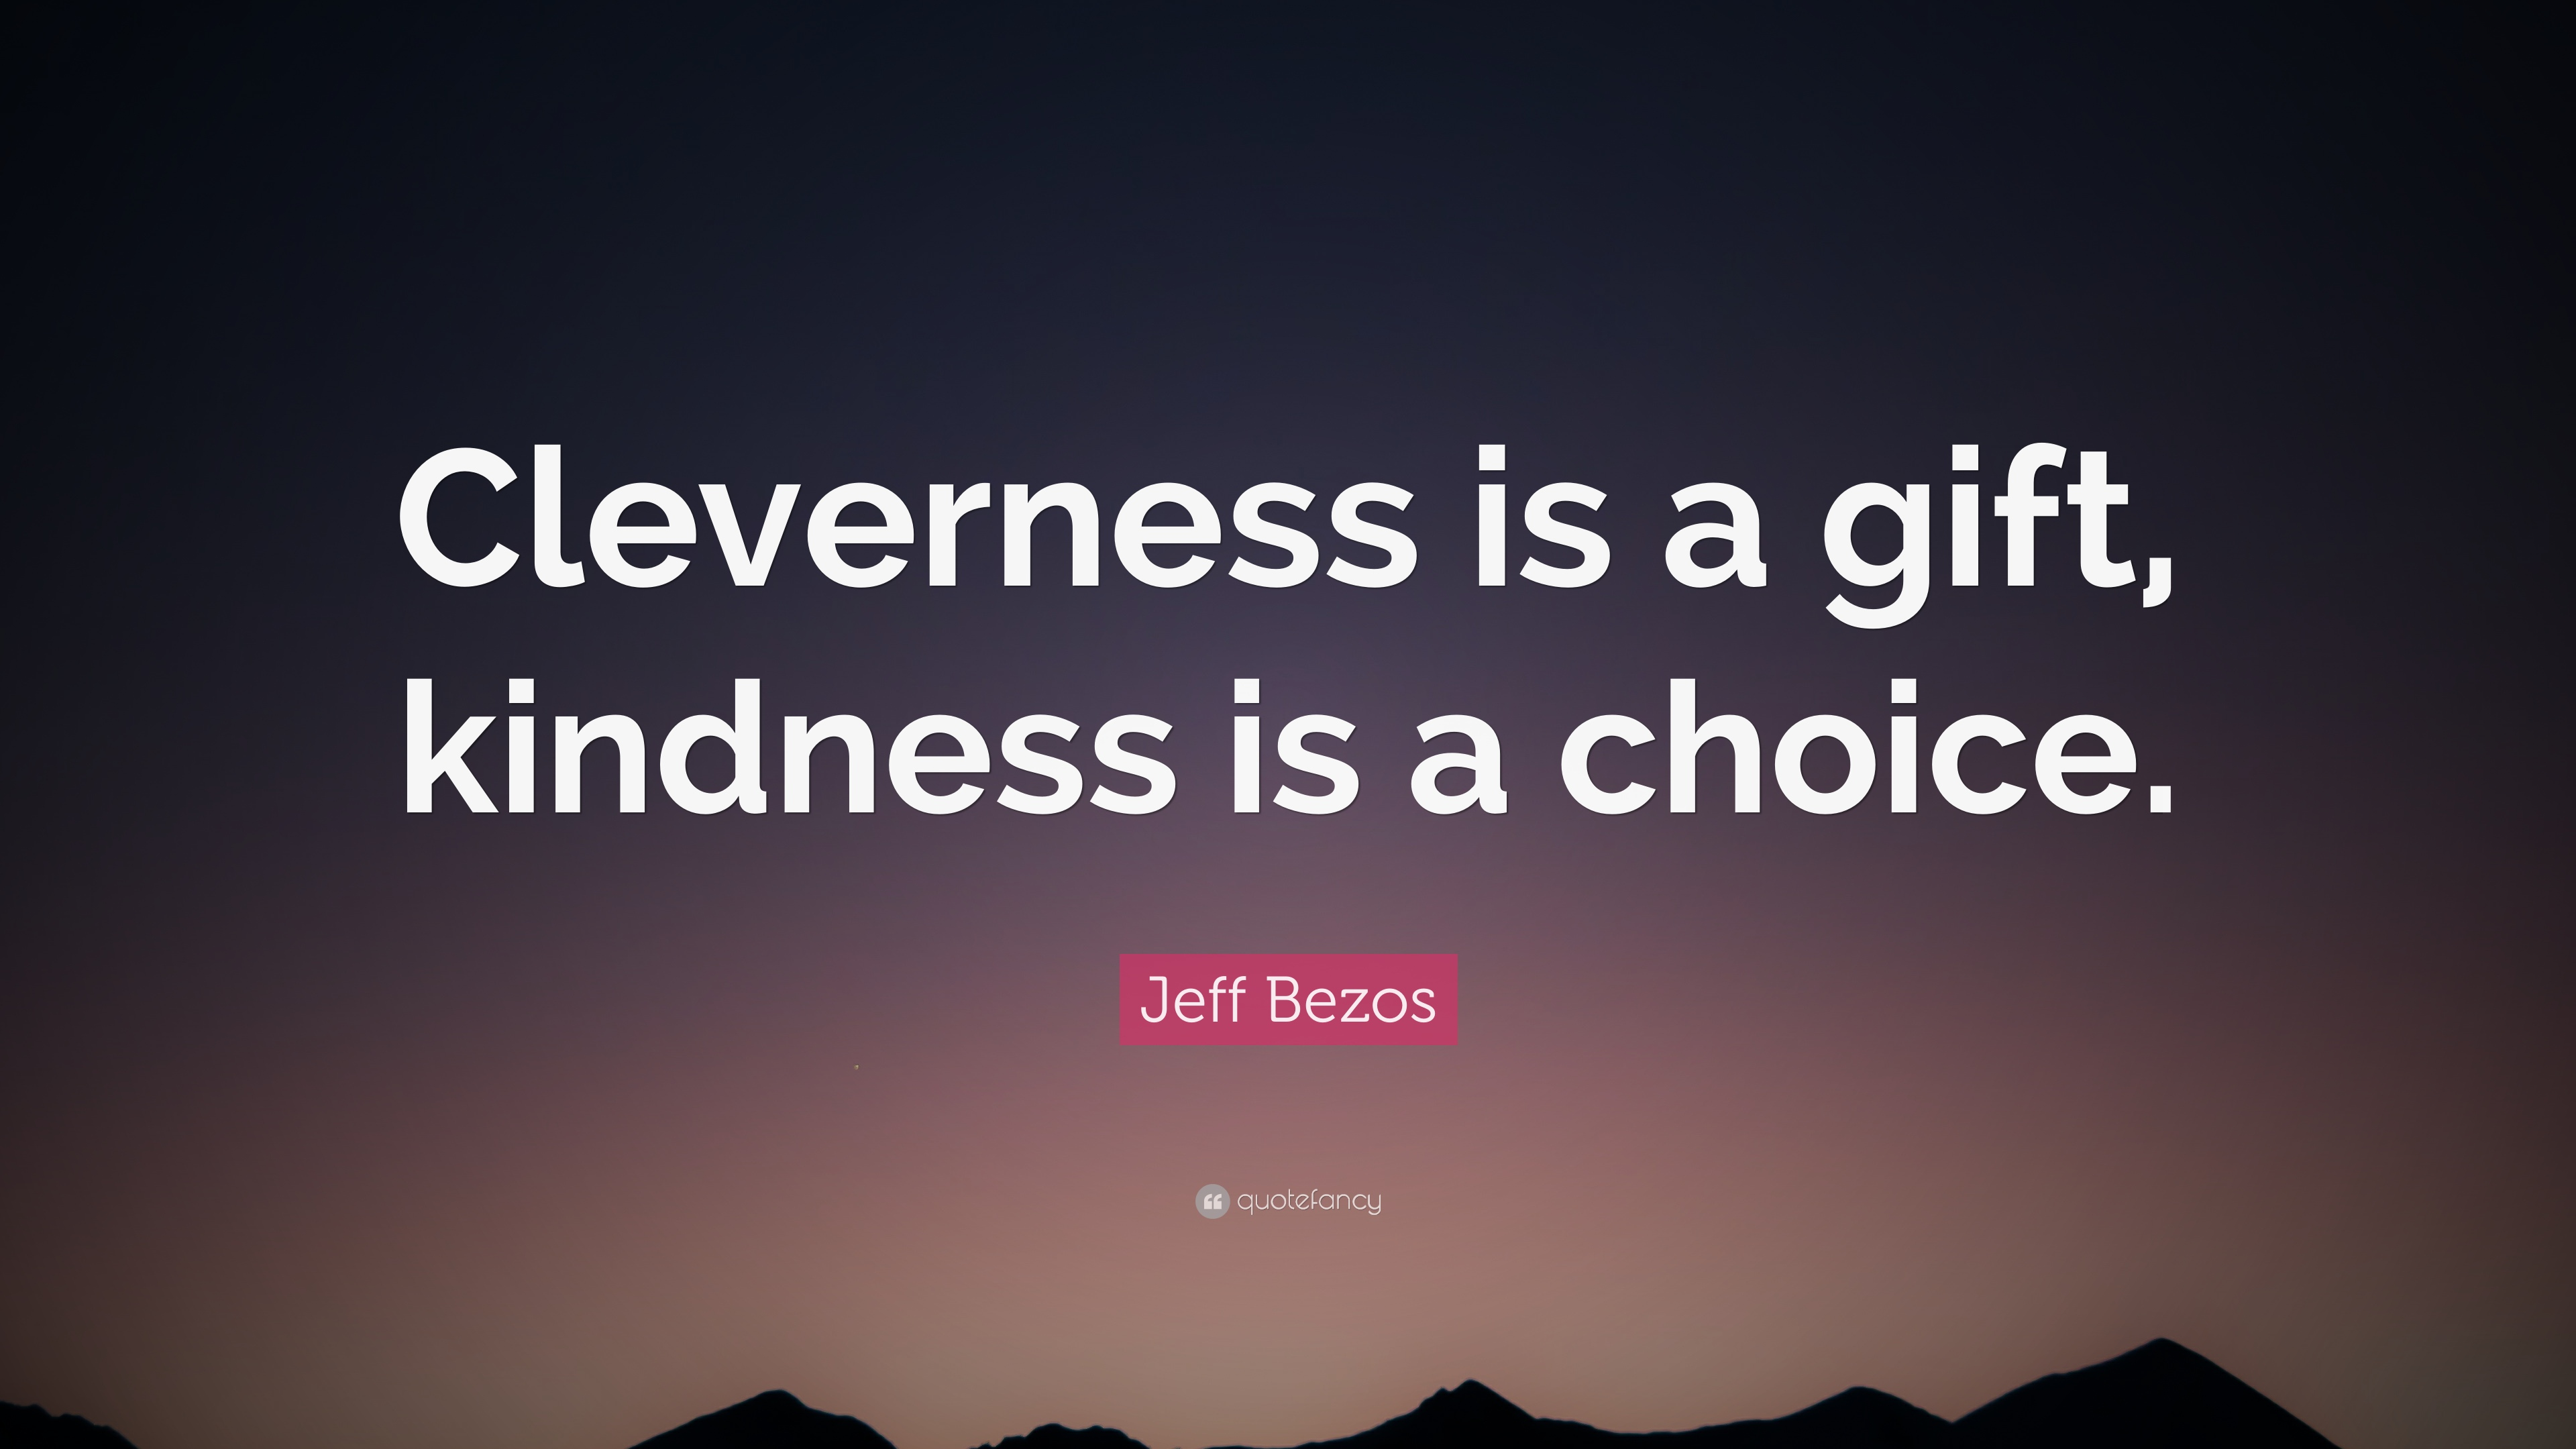 Jeff bezos quote cleverness is a gift kindness is a choice